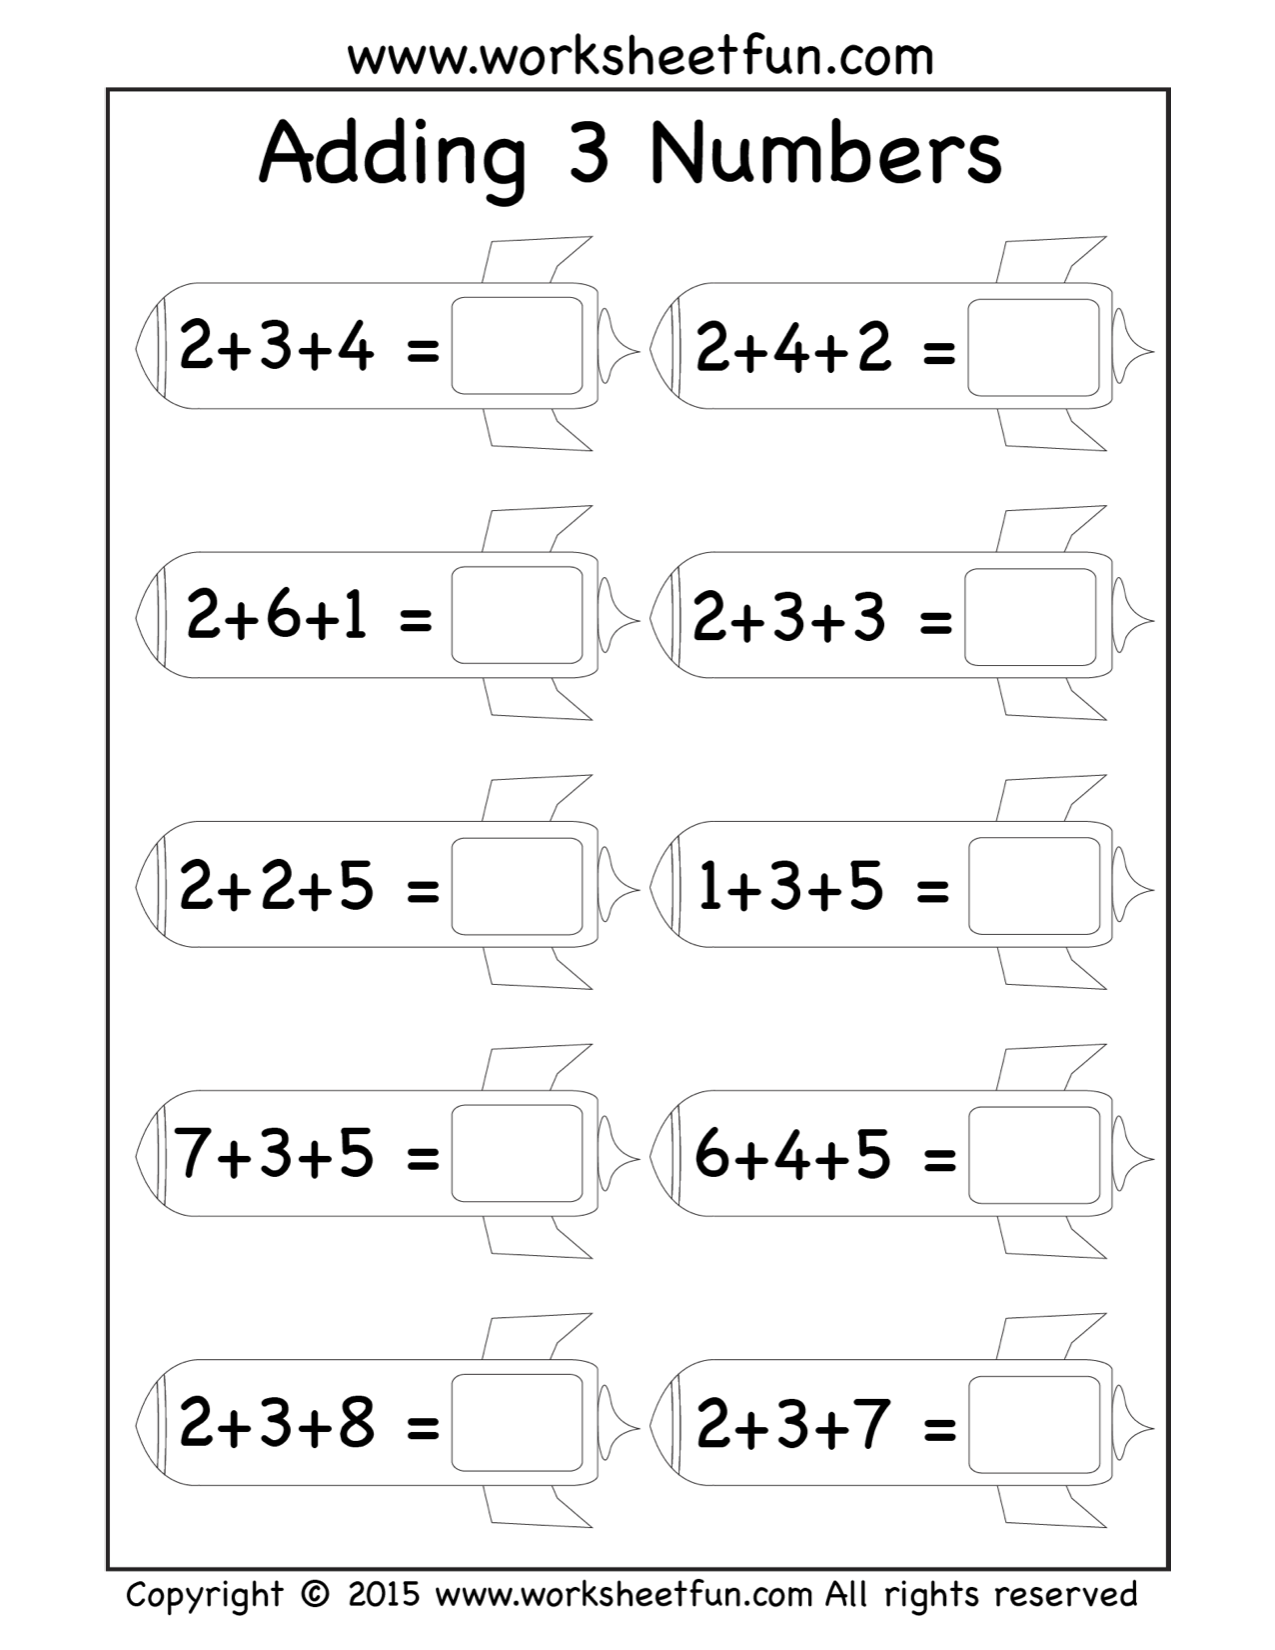 worksheet Addends Worksheets free three addend worksheets adding 3 numbers rockets maths rockets